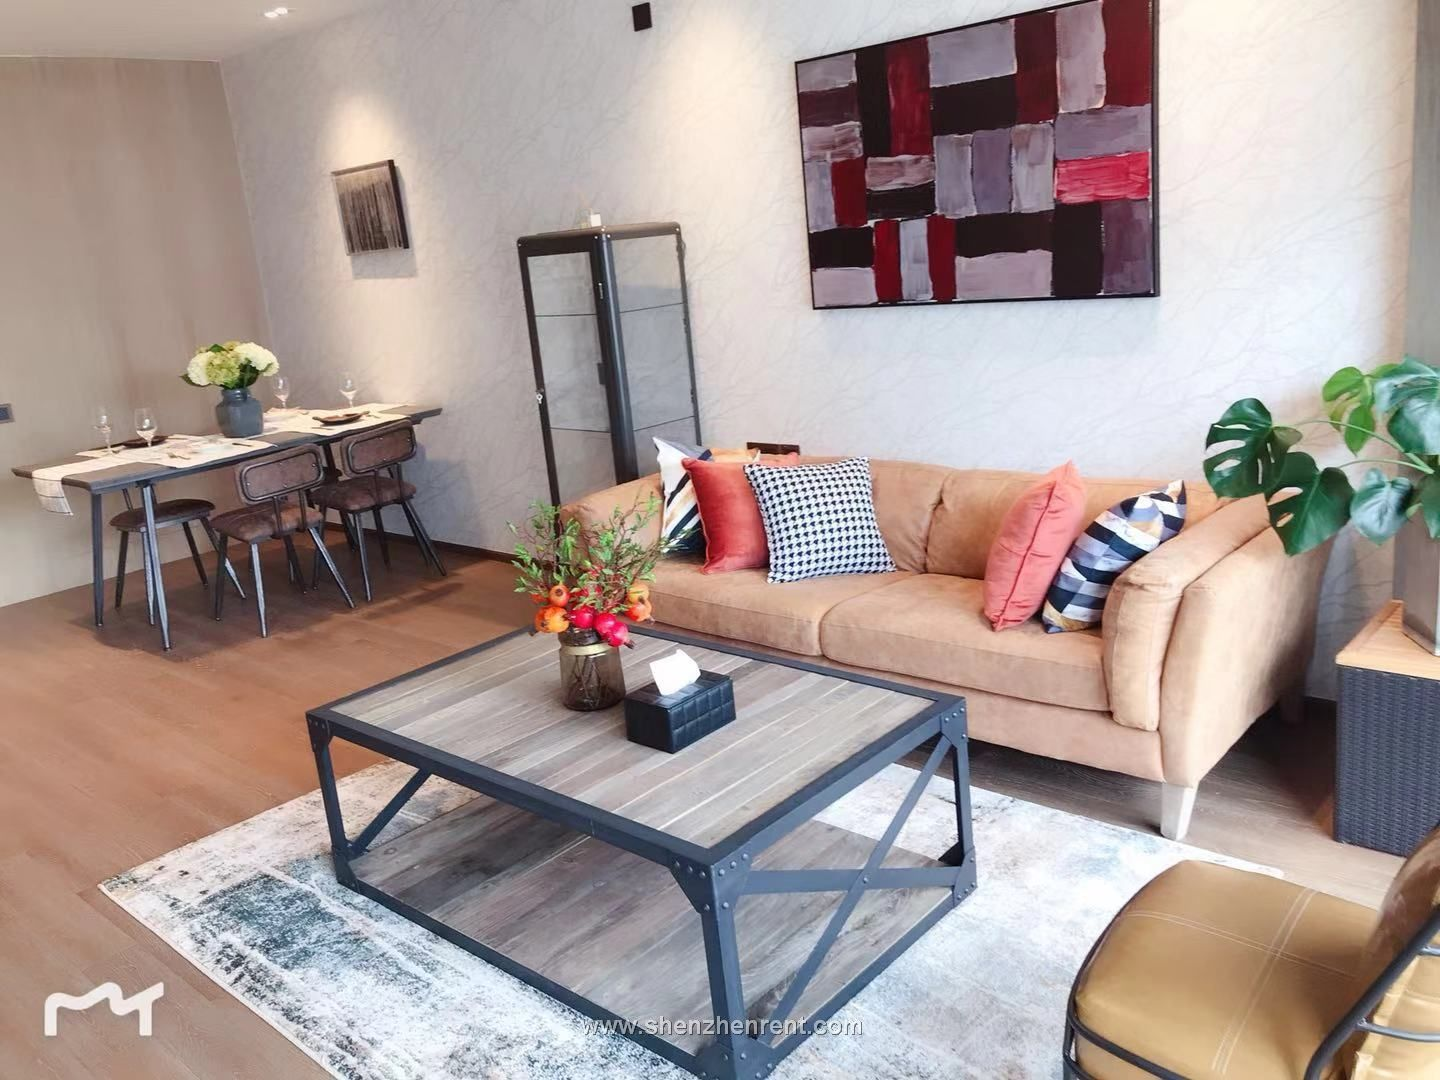 Luxurious 1 bedroom apartment in shekou for rent